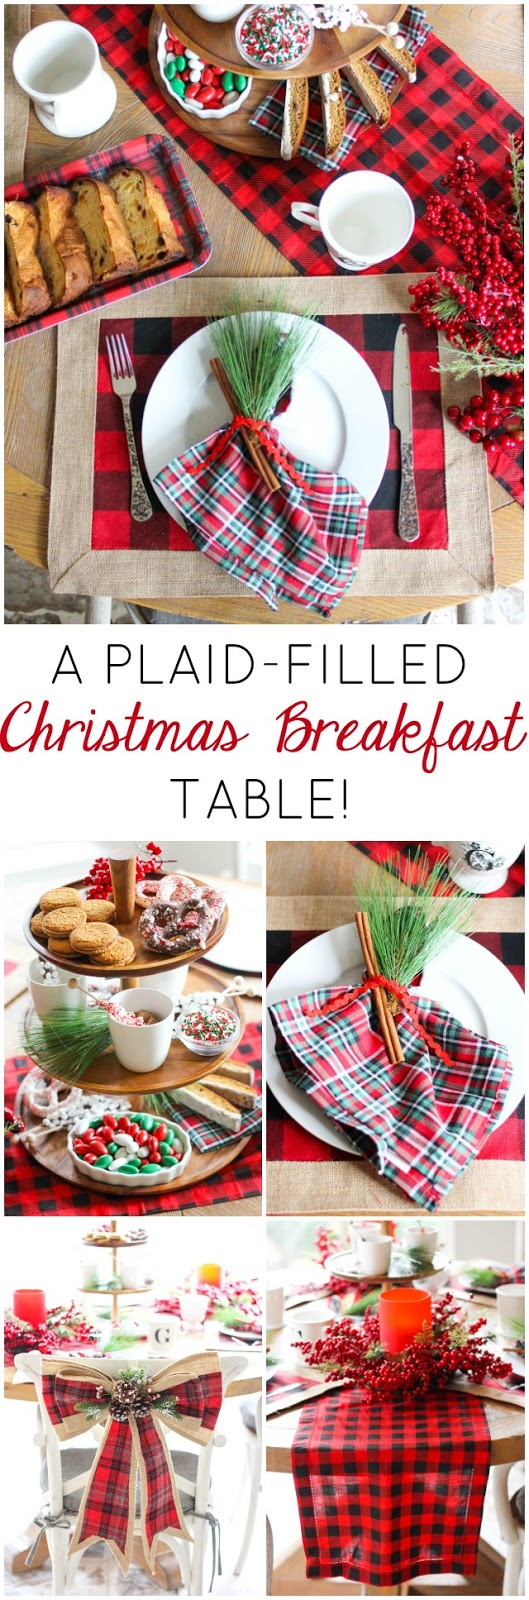 How to create a special Christmas breakfast table with plaid decor!